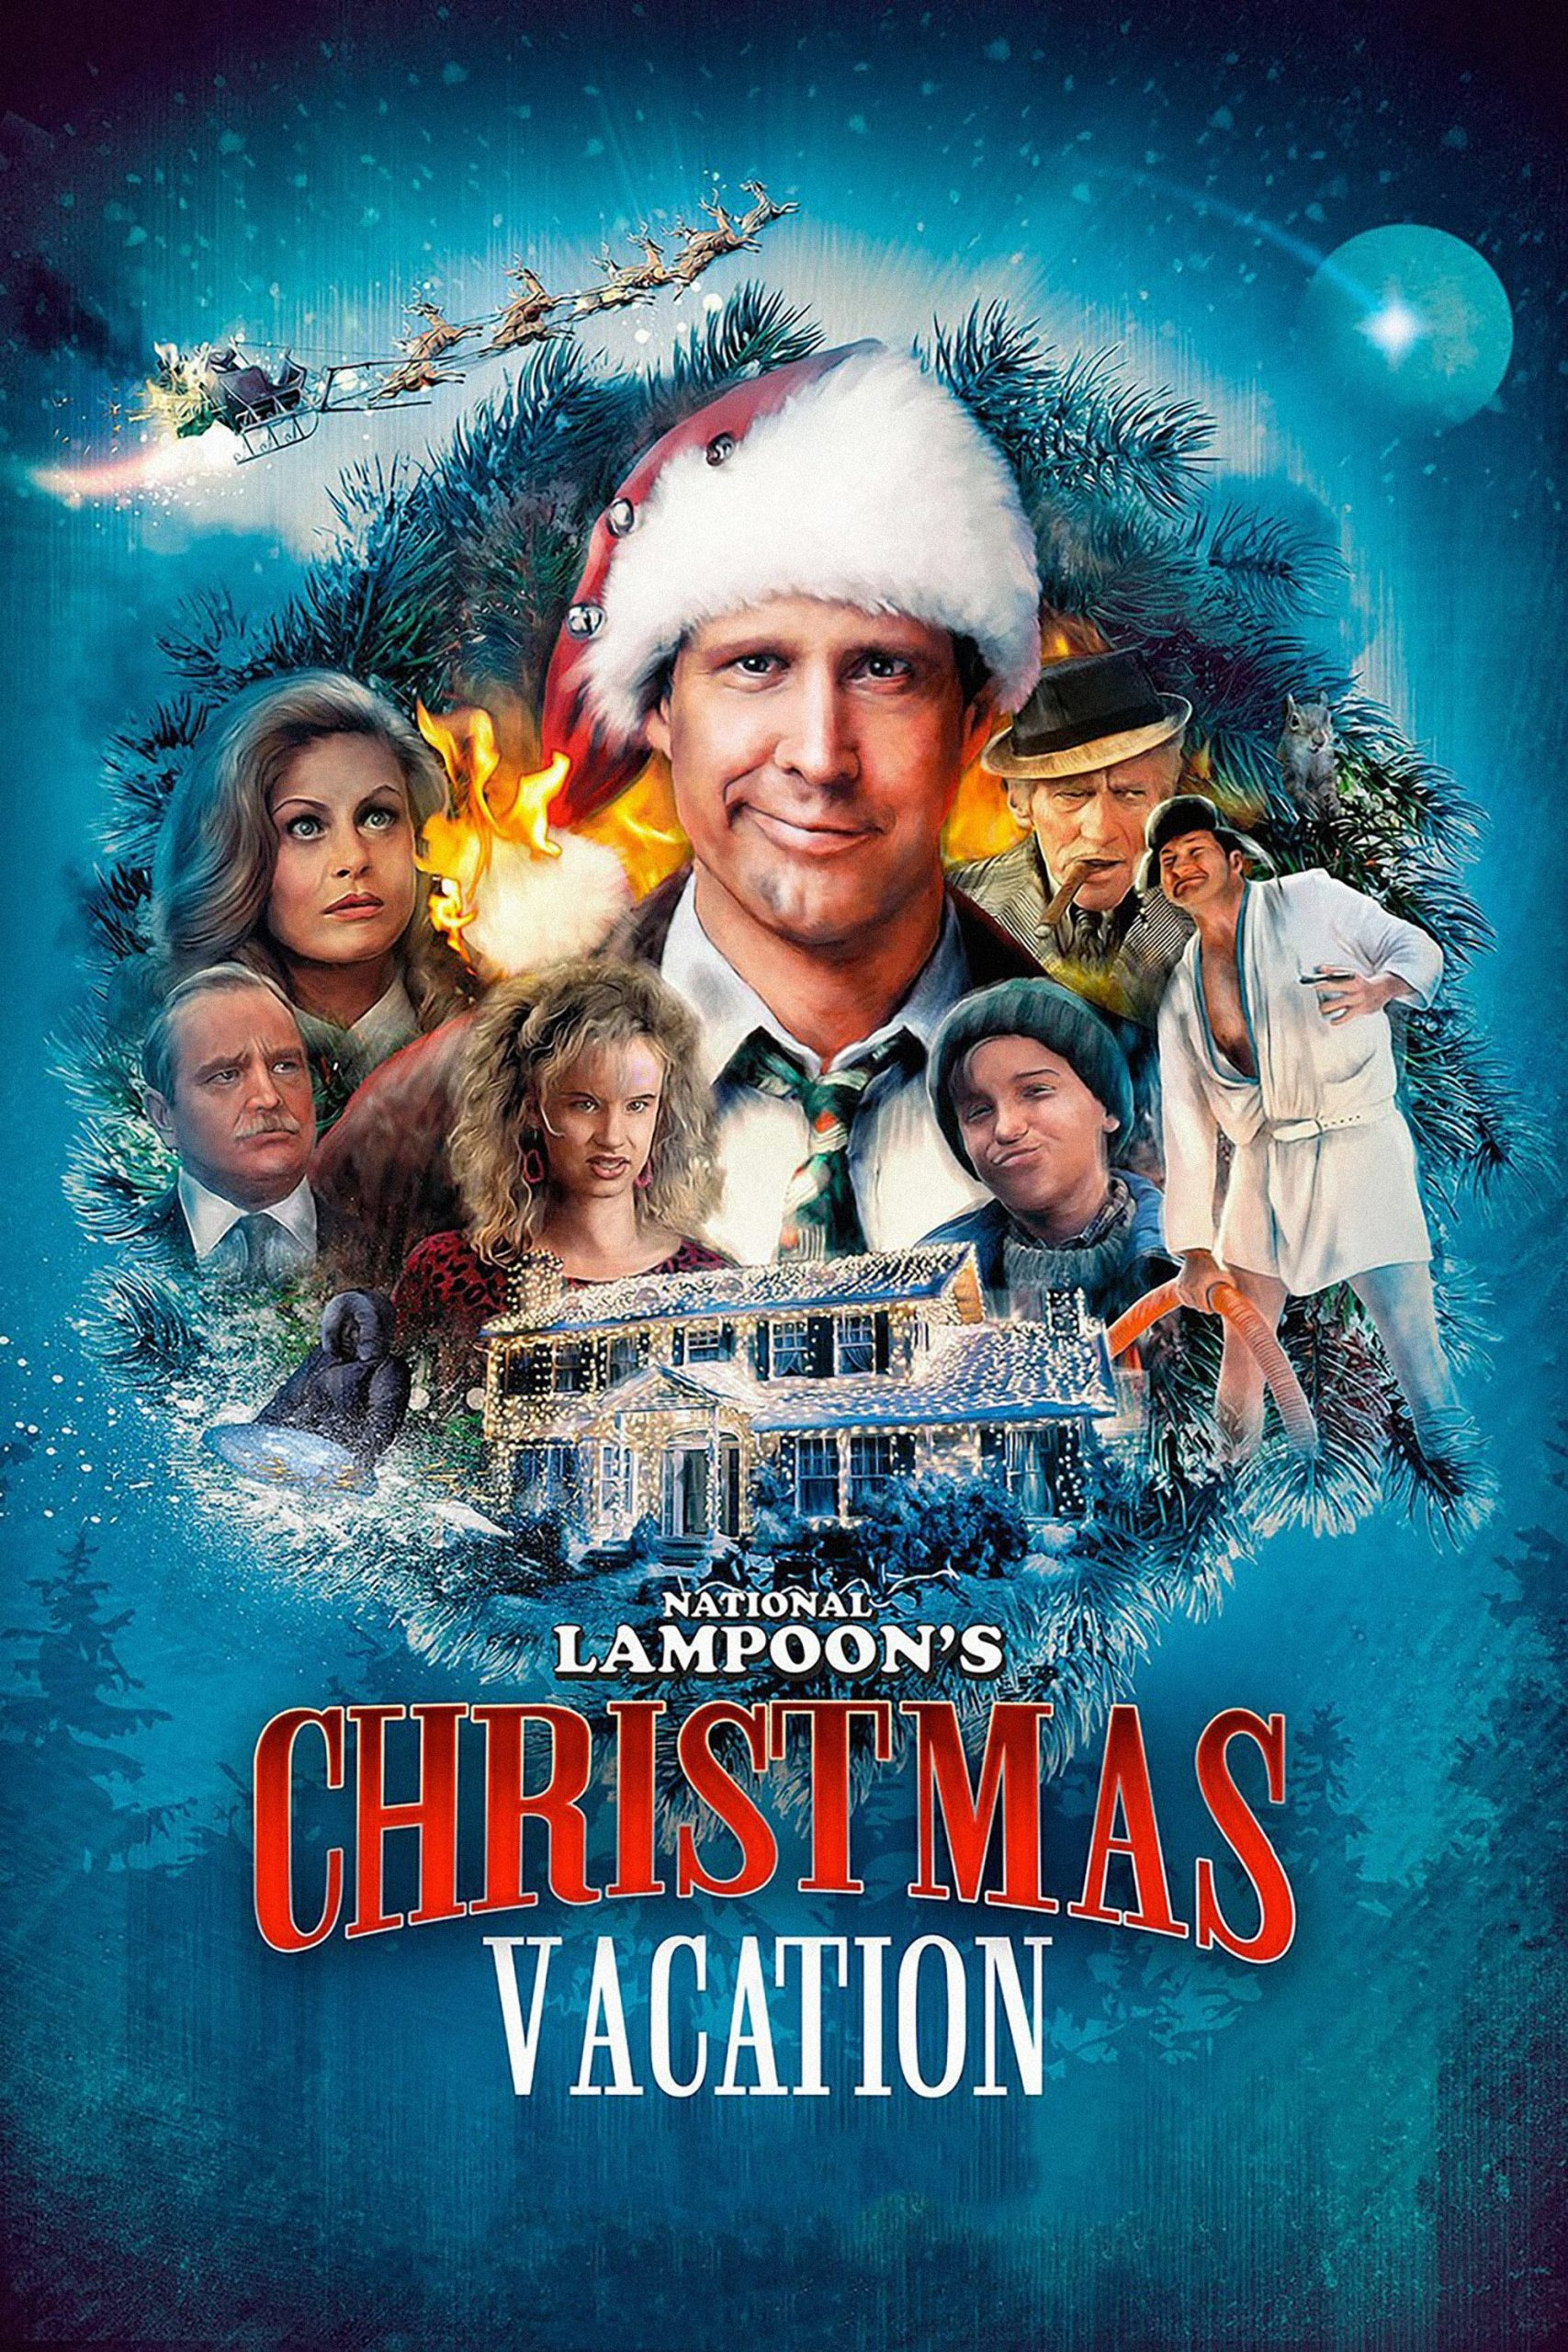 Poster for Carl's Movie Night: National Lampoon's Christmas Vacation (Carl's Movie Night)